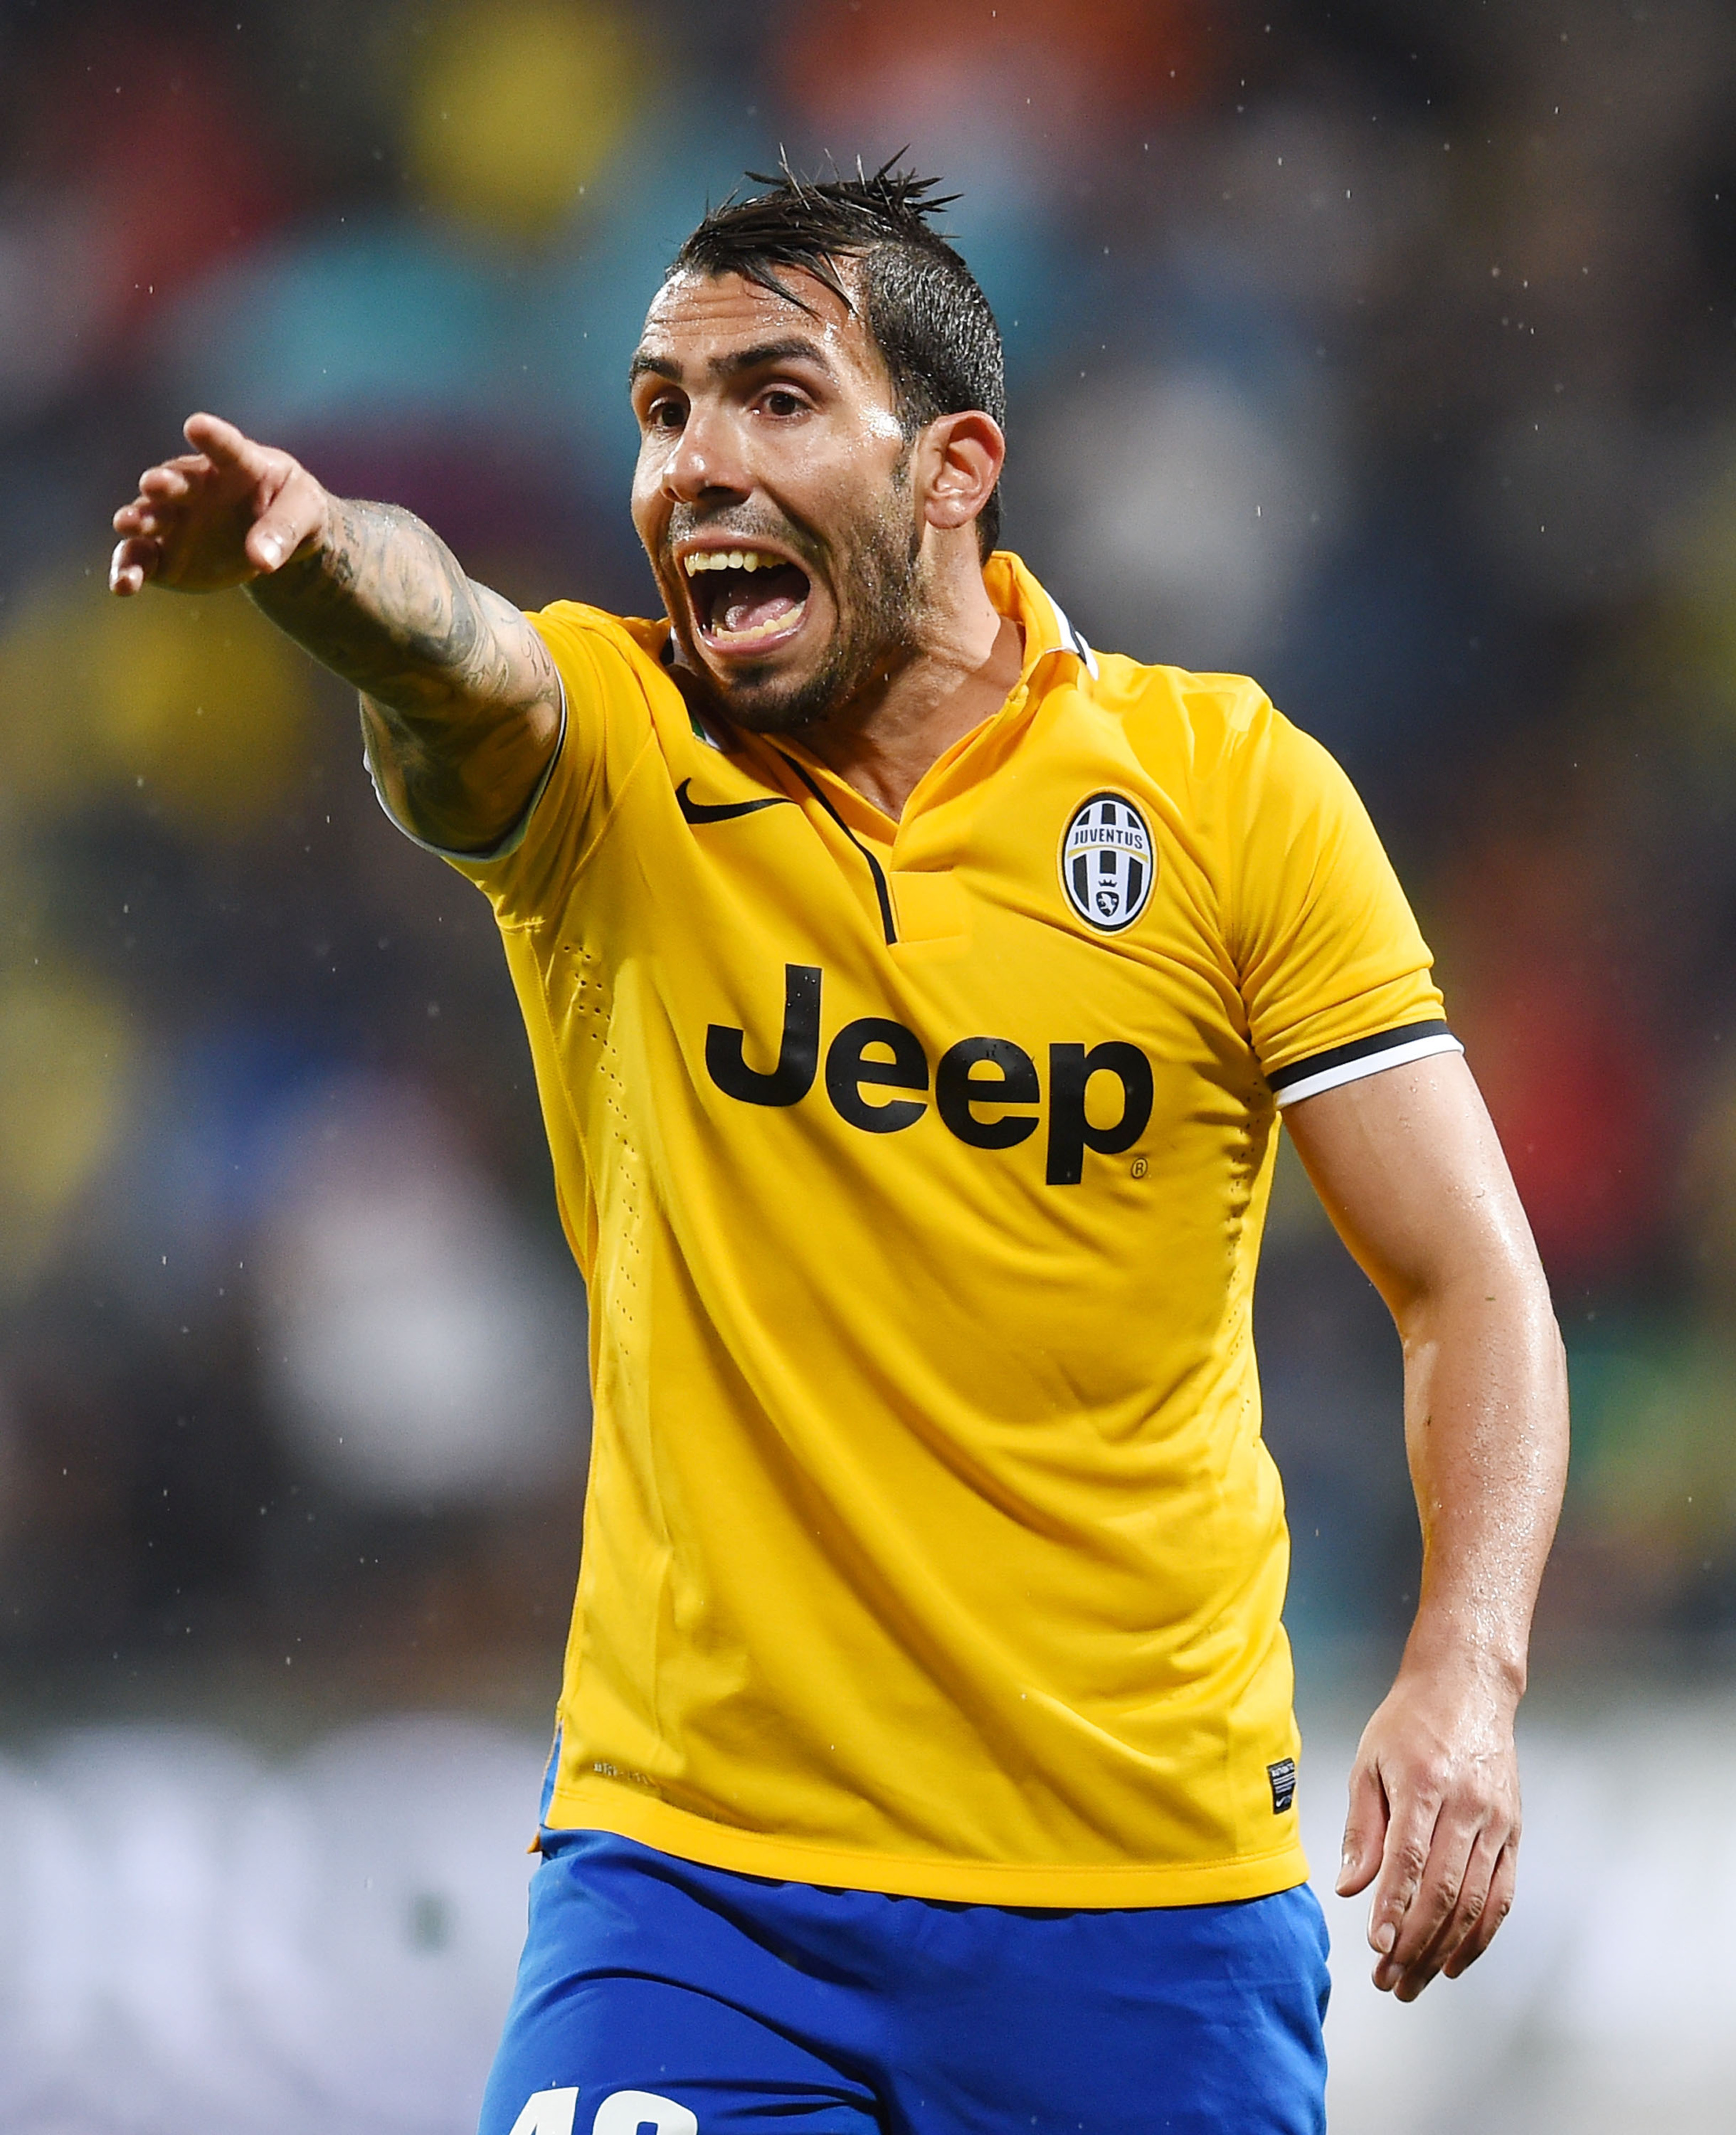 Carlos Tevez's father kidnapped, released